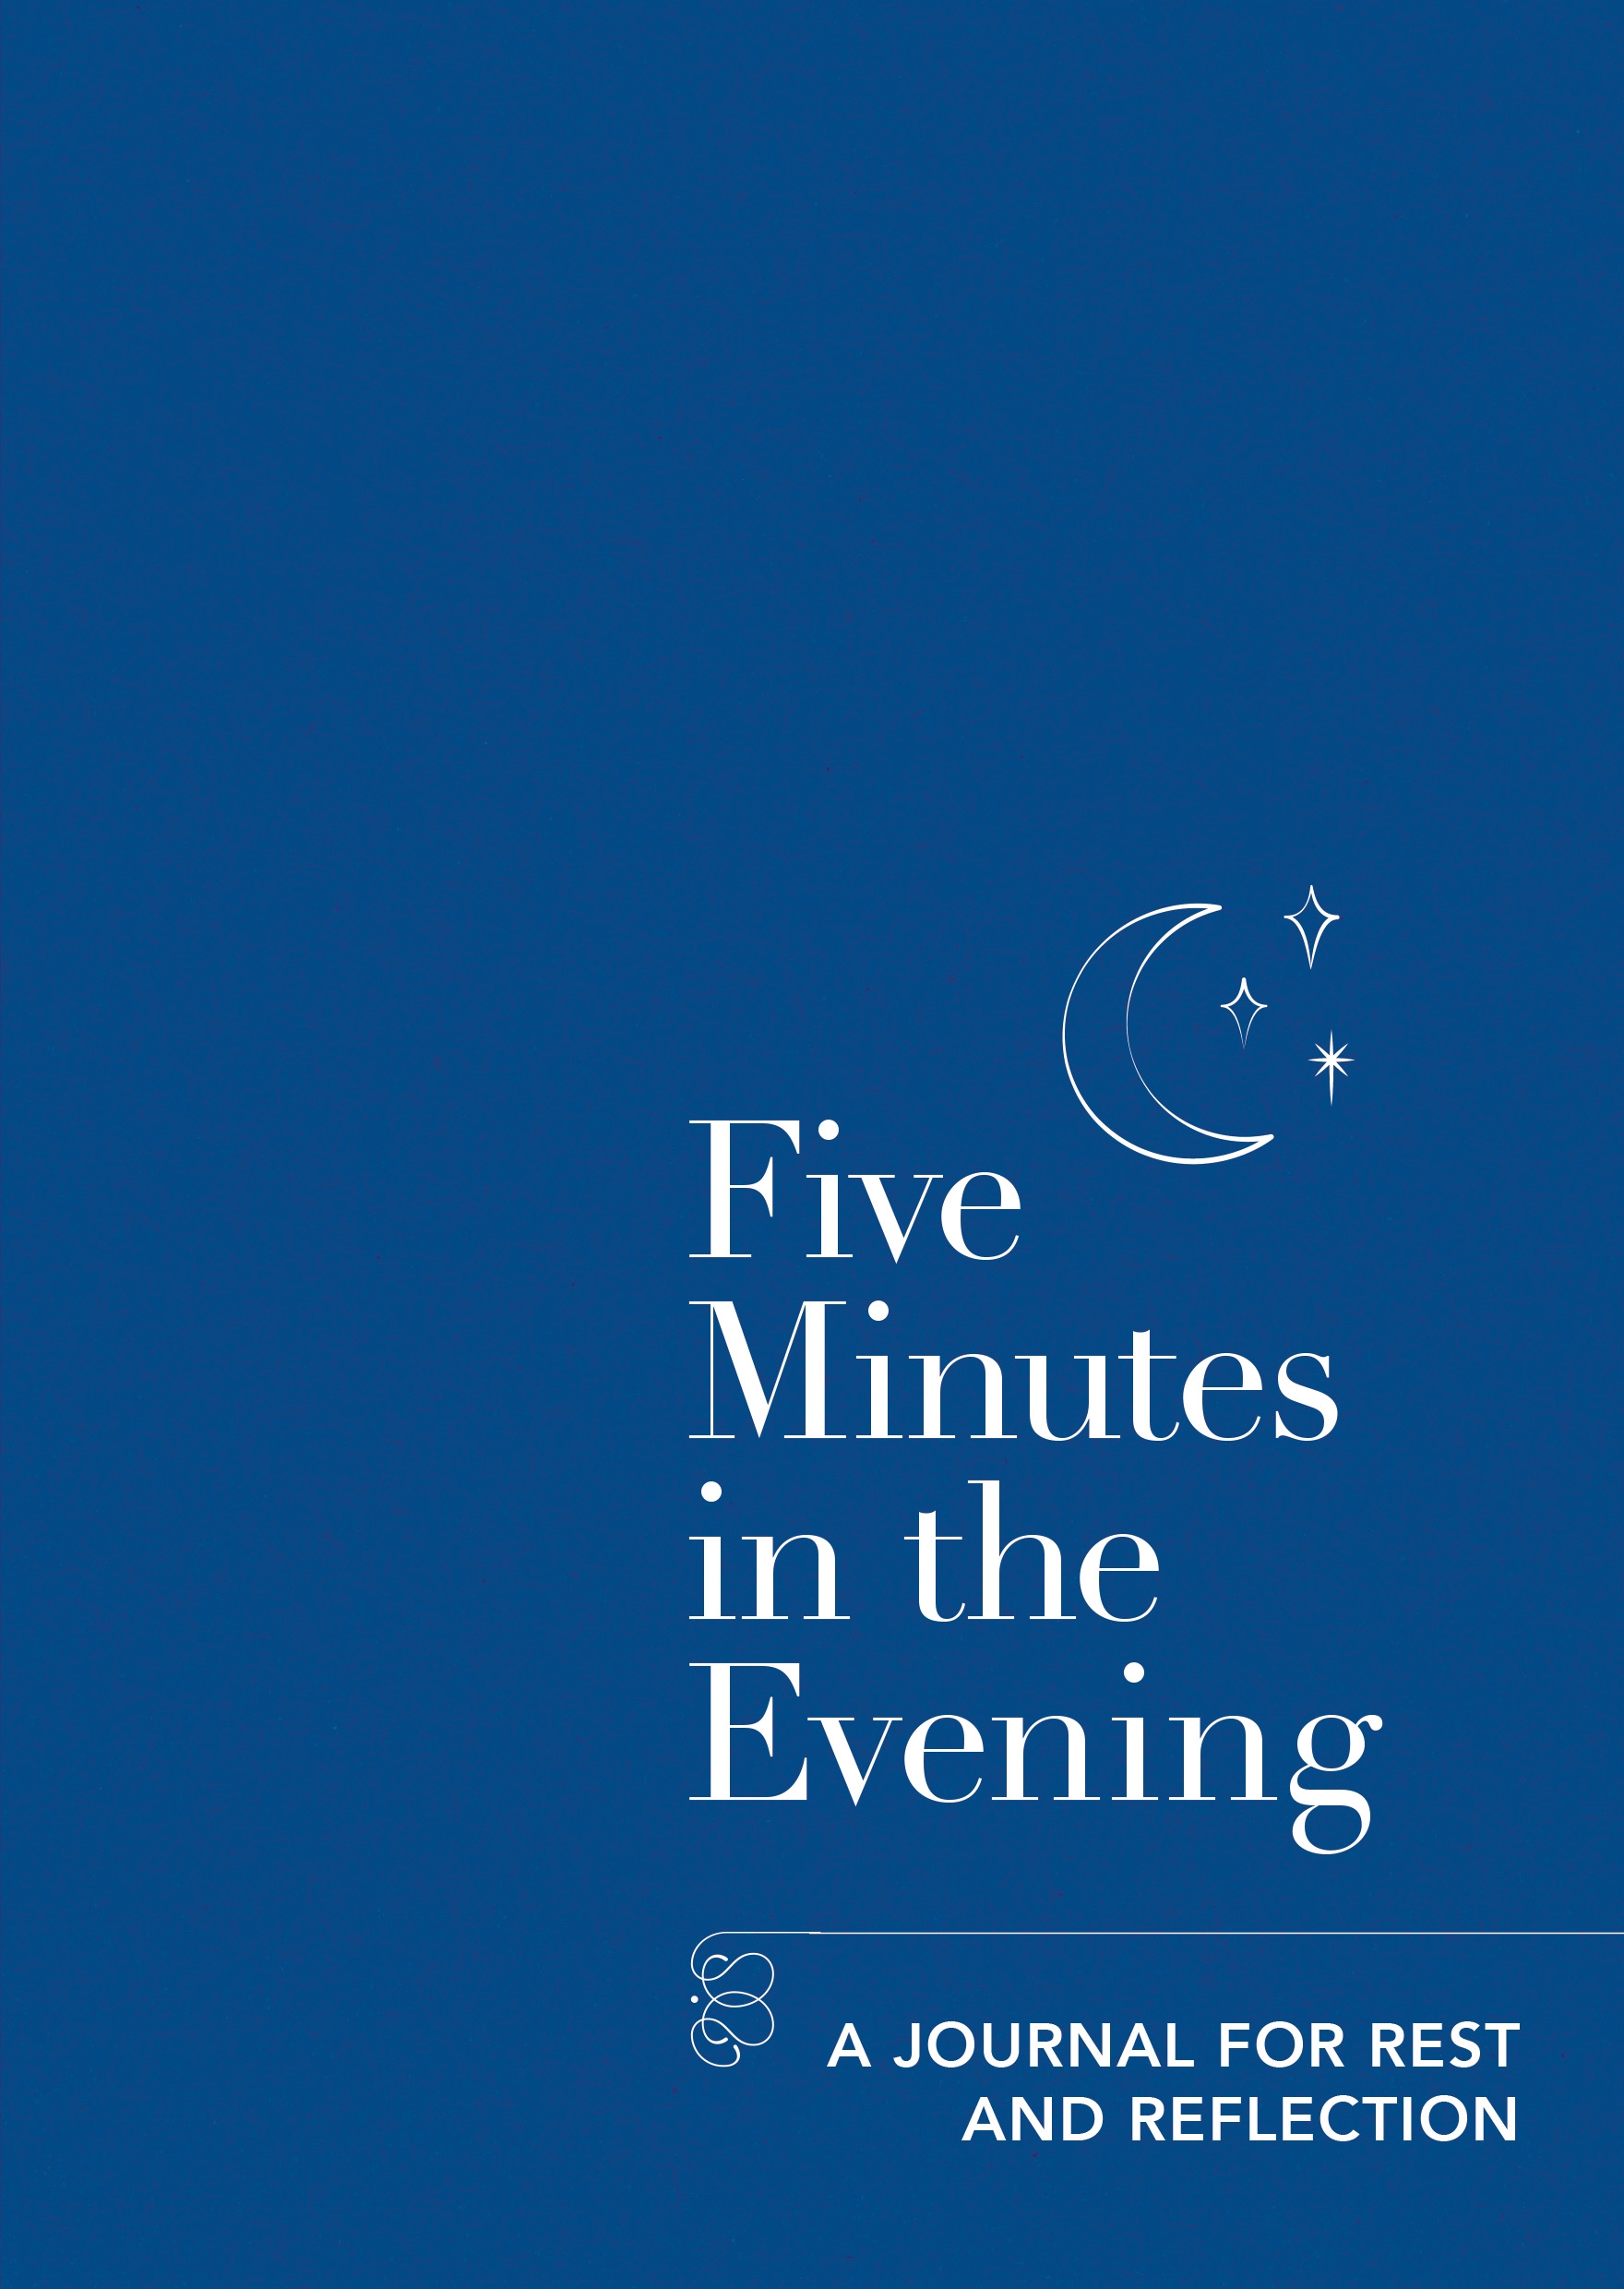 Five Minutes In The Evening - A Rest and Reflection Journal